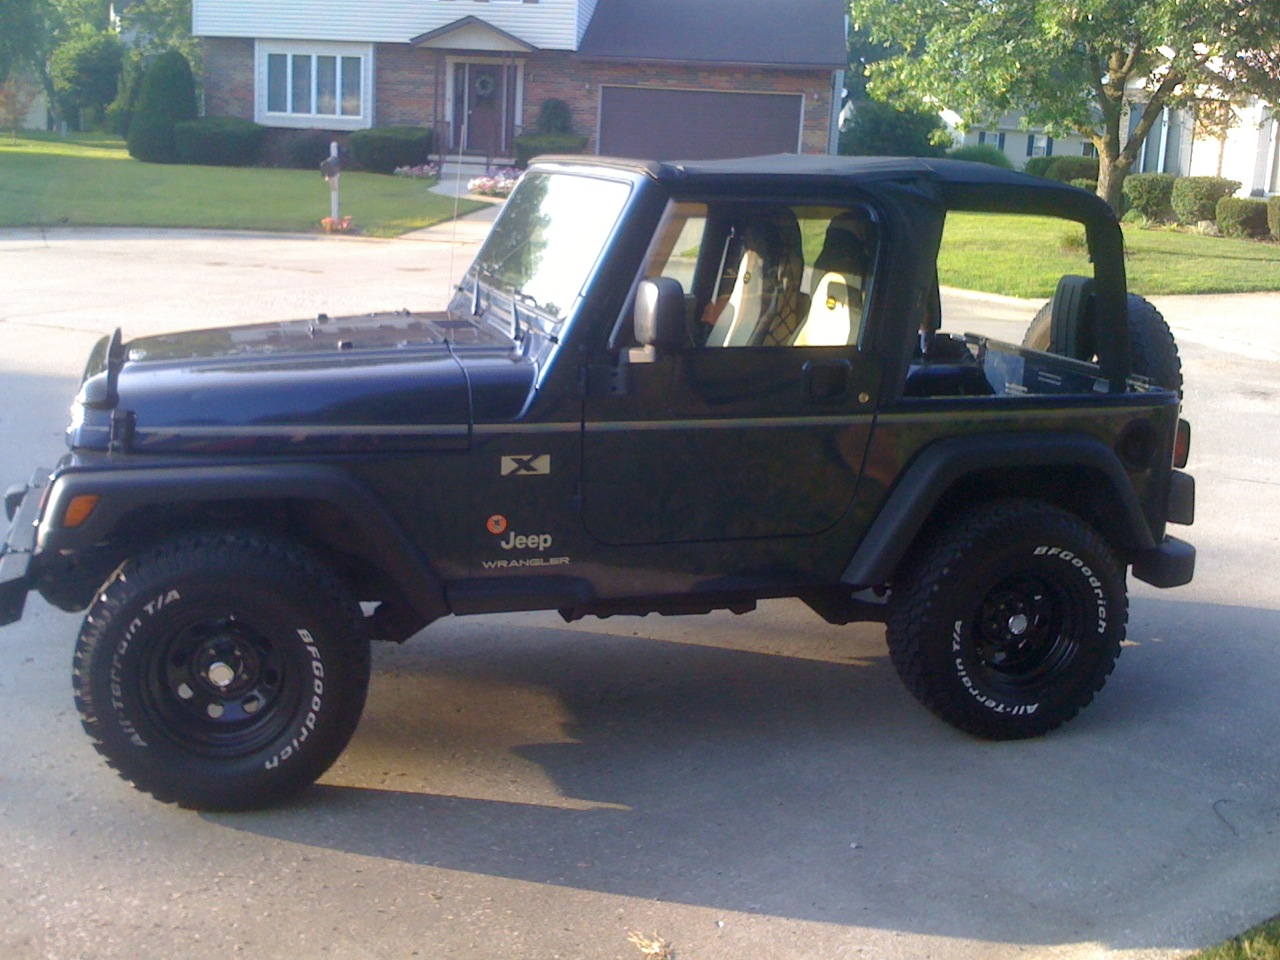 Replacing The Sway Bar Linkage on a Jeep Wrangler